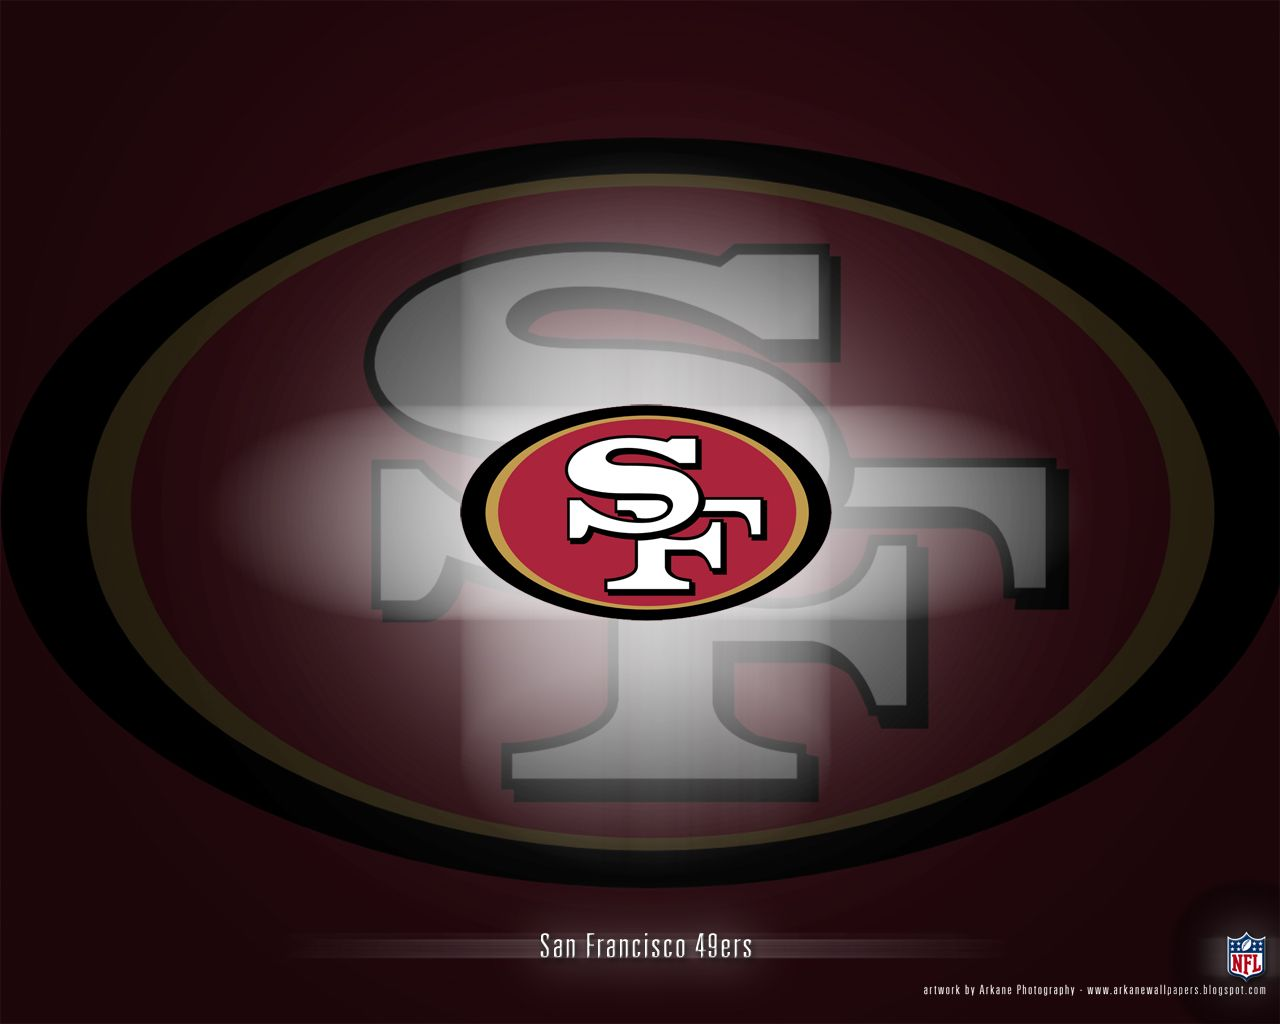 San francisco 49ers 49ers wallpapers hd 49er fan pinterest san francisco 49ers 49ers wallpapers hd voltagebd Image collections